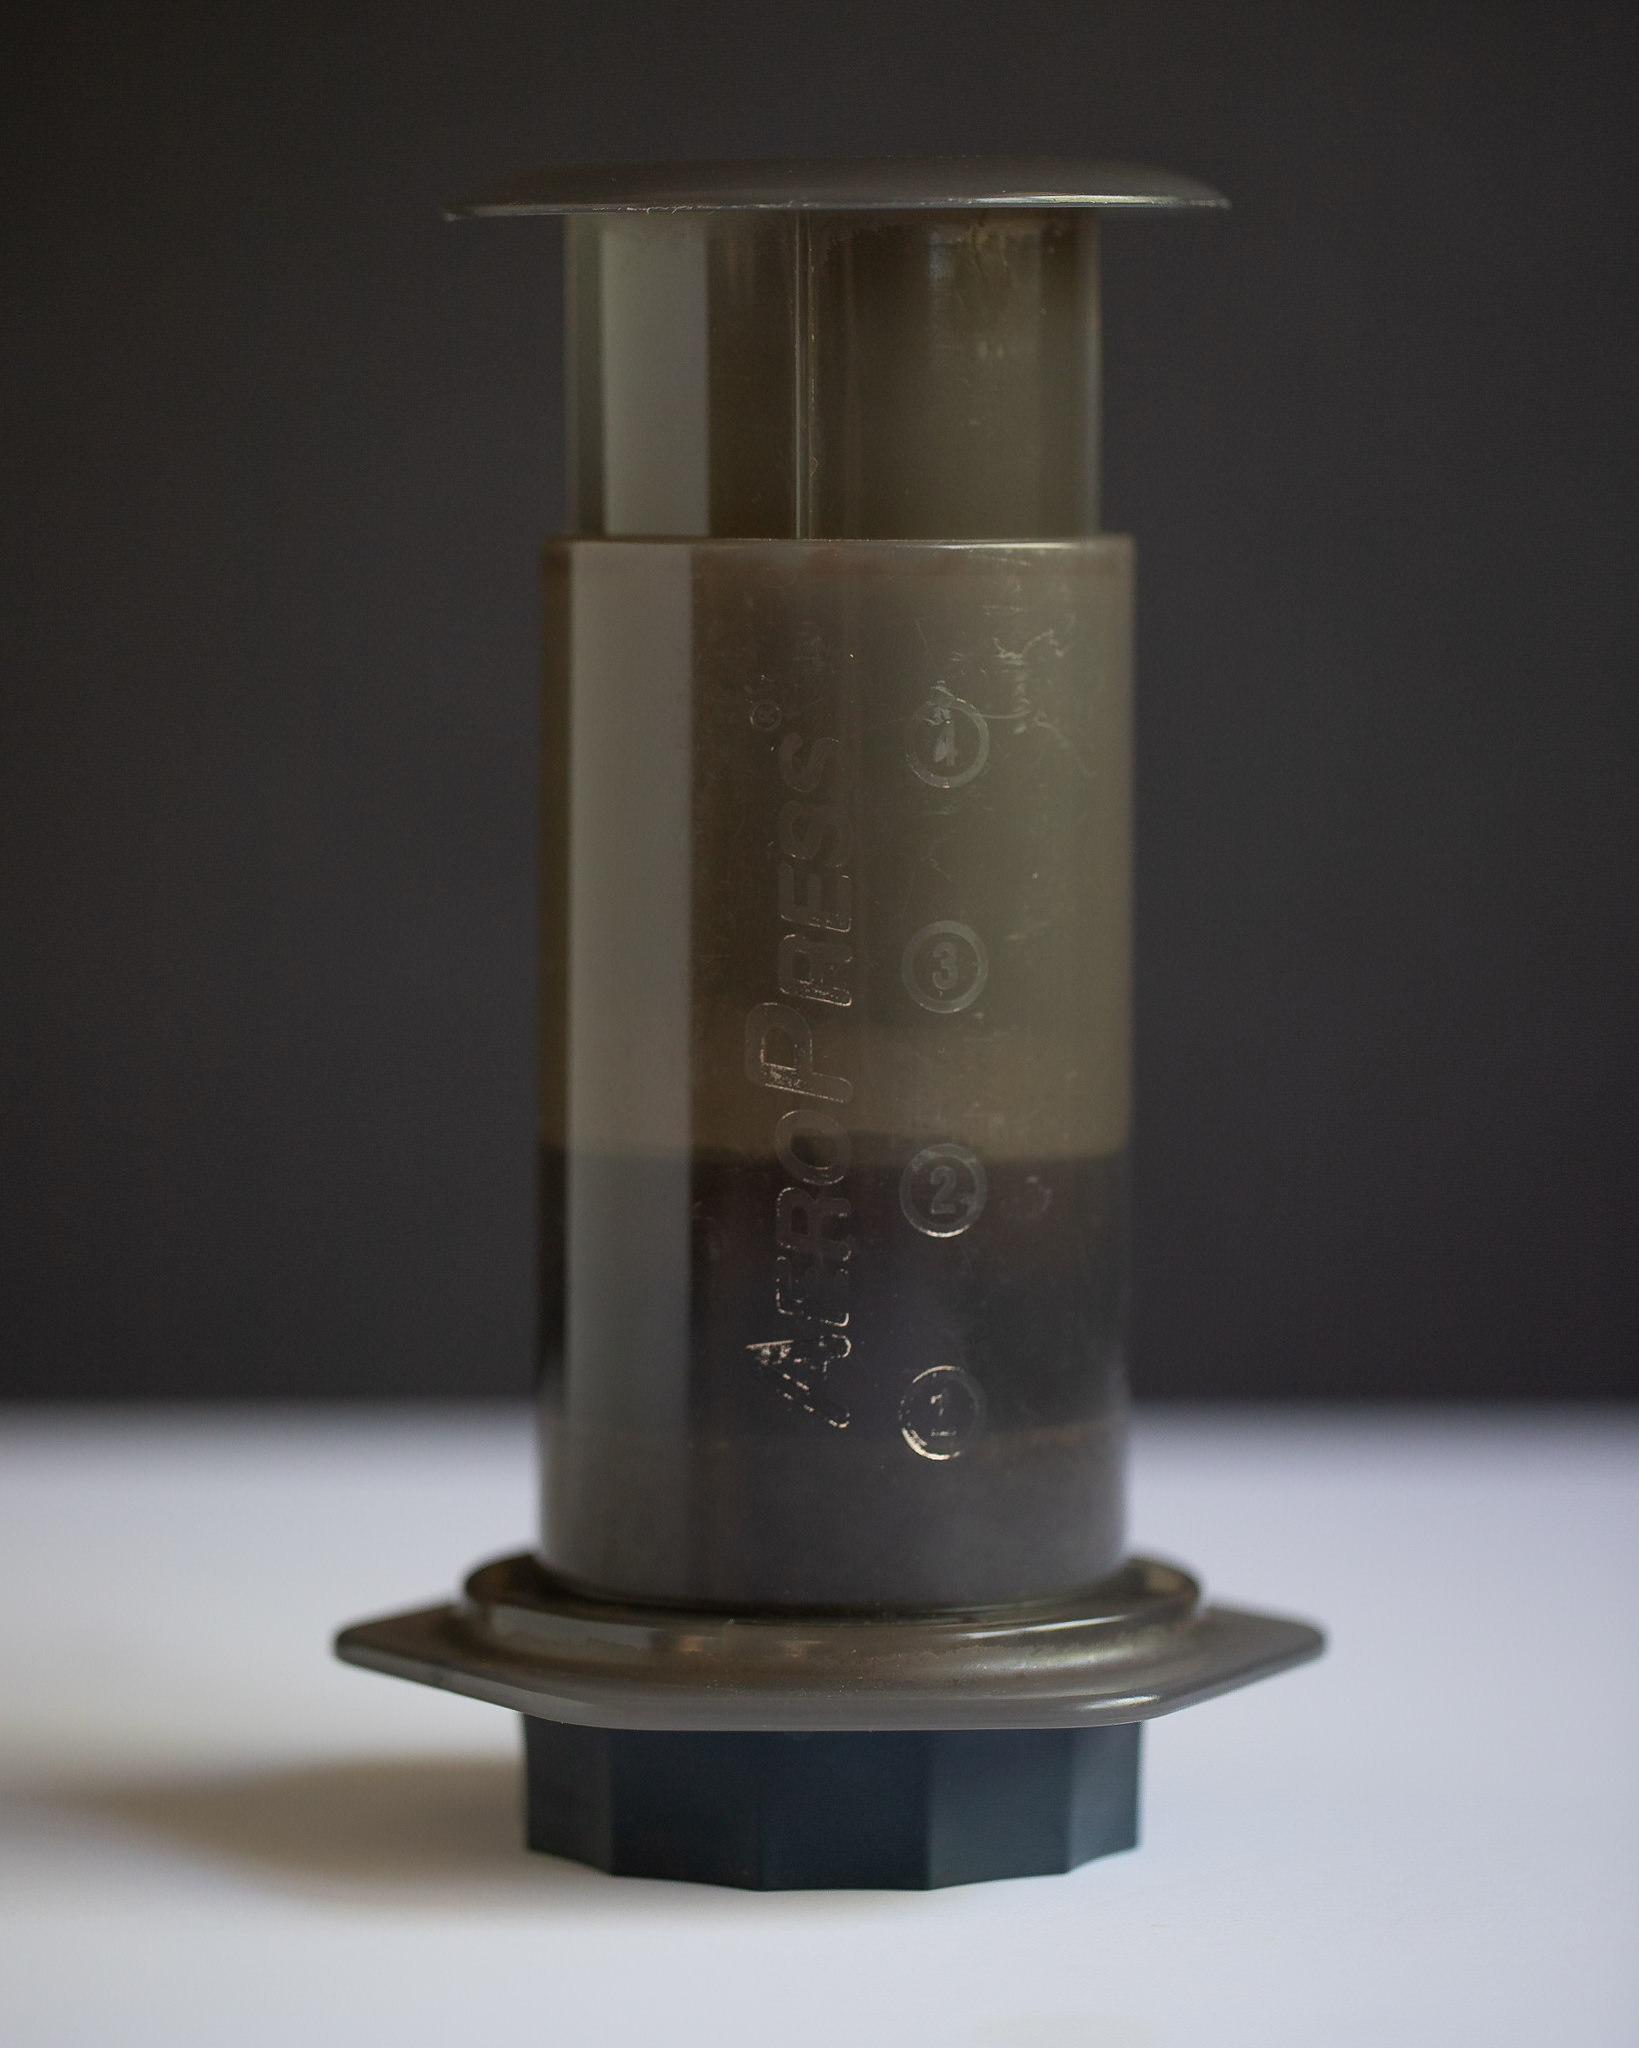 Liquid suspended above the off-brand Aeropress gasket